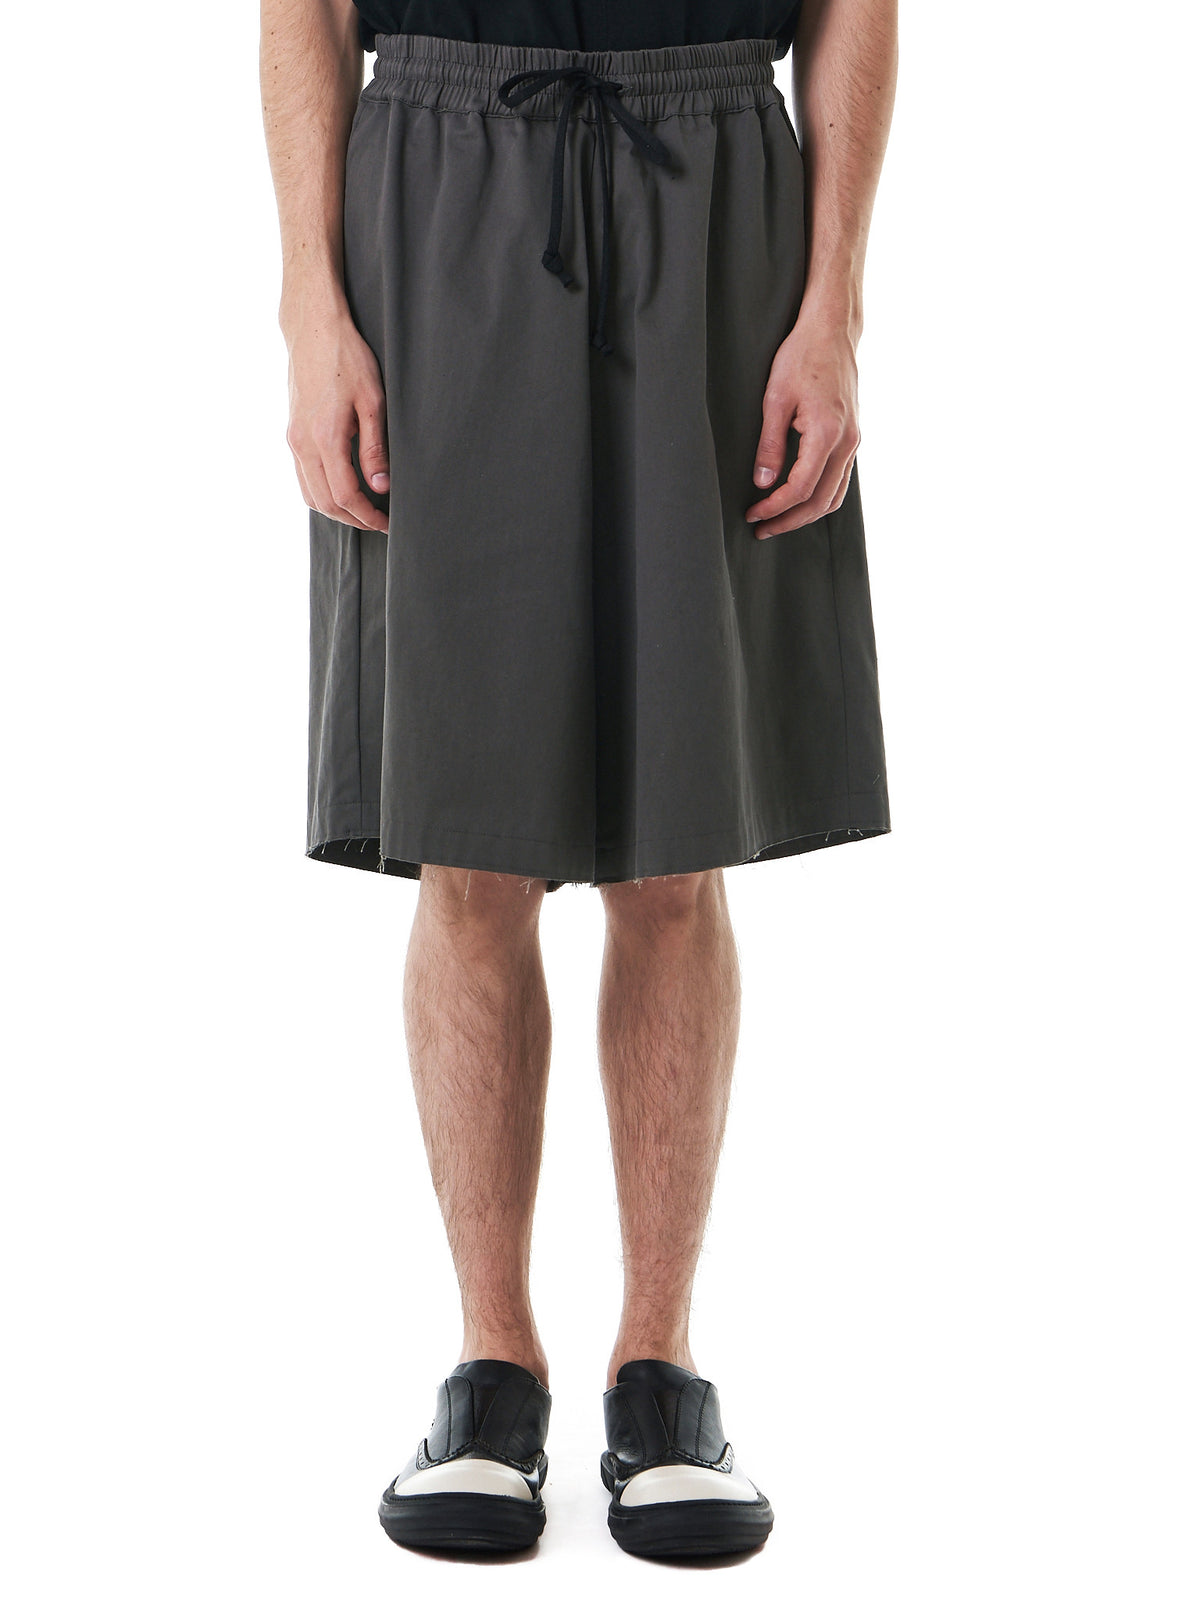 'Gabardine' Elasticized Shorts (713-CO-GR-GREEN) - H. Lorenzo